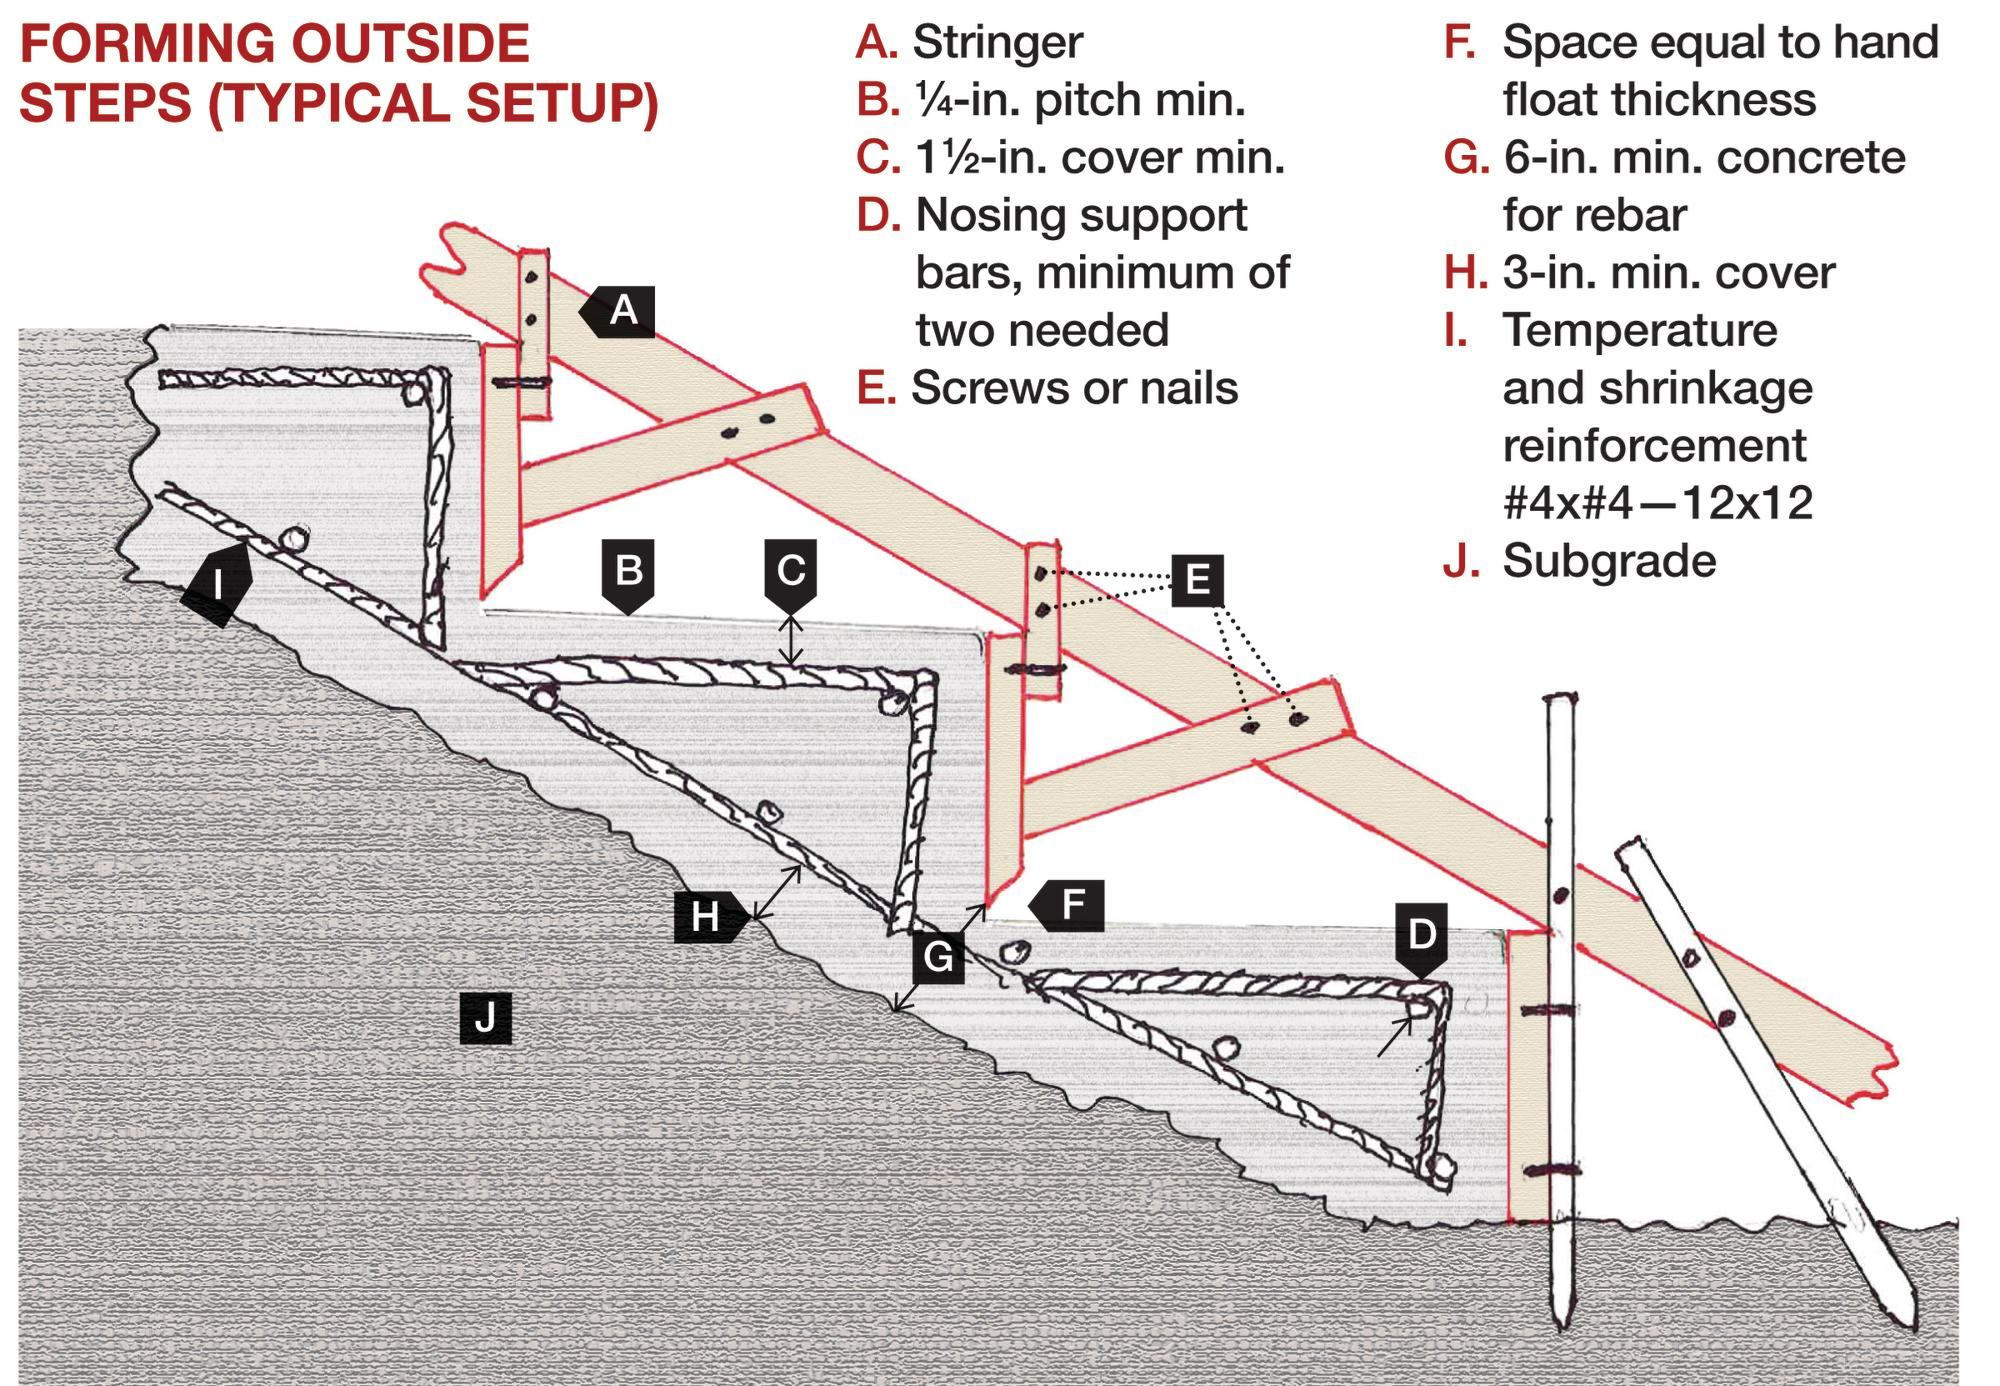 Forming Concrete Steps| Concrete Construction Magazine | Decorative ...